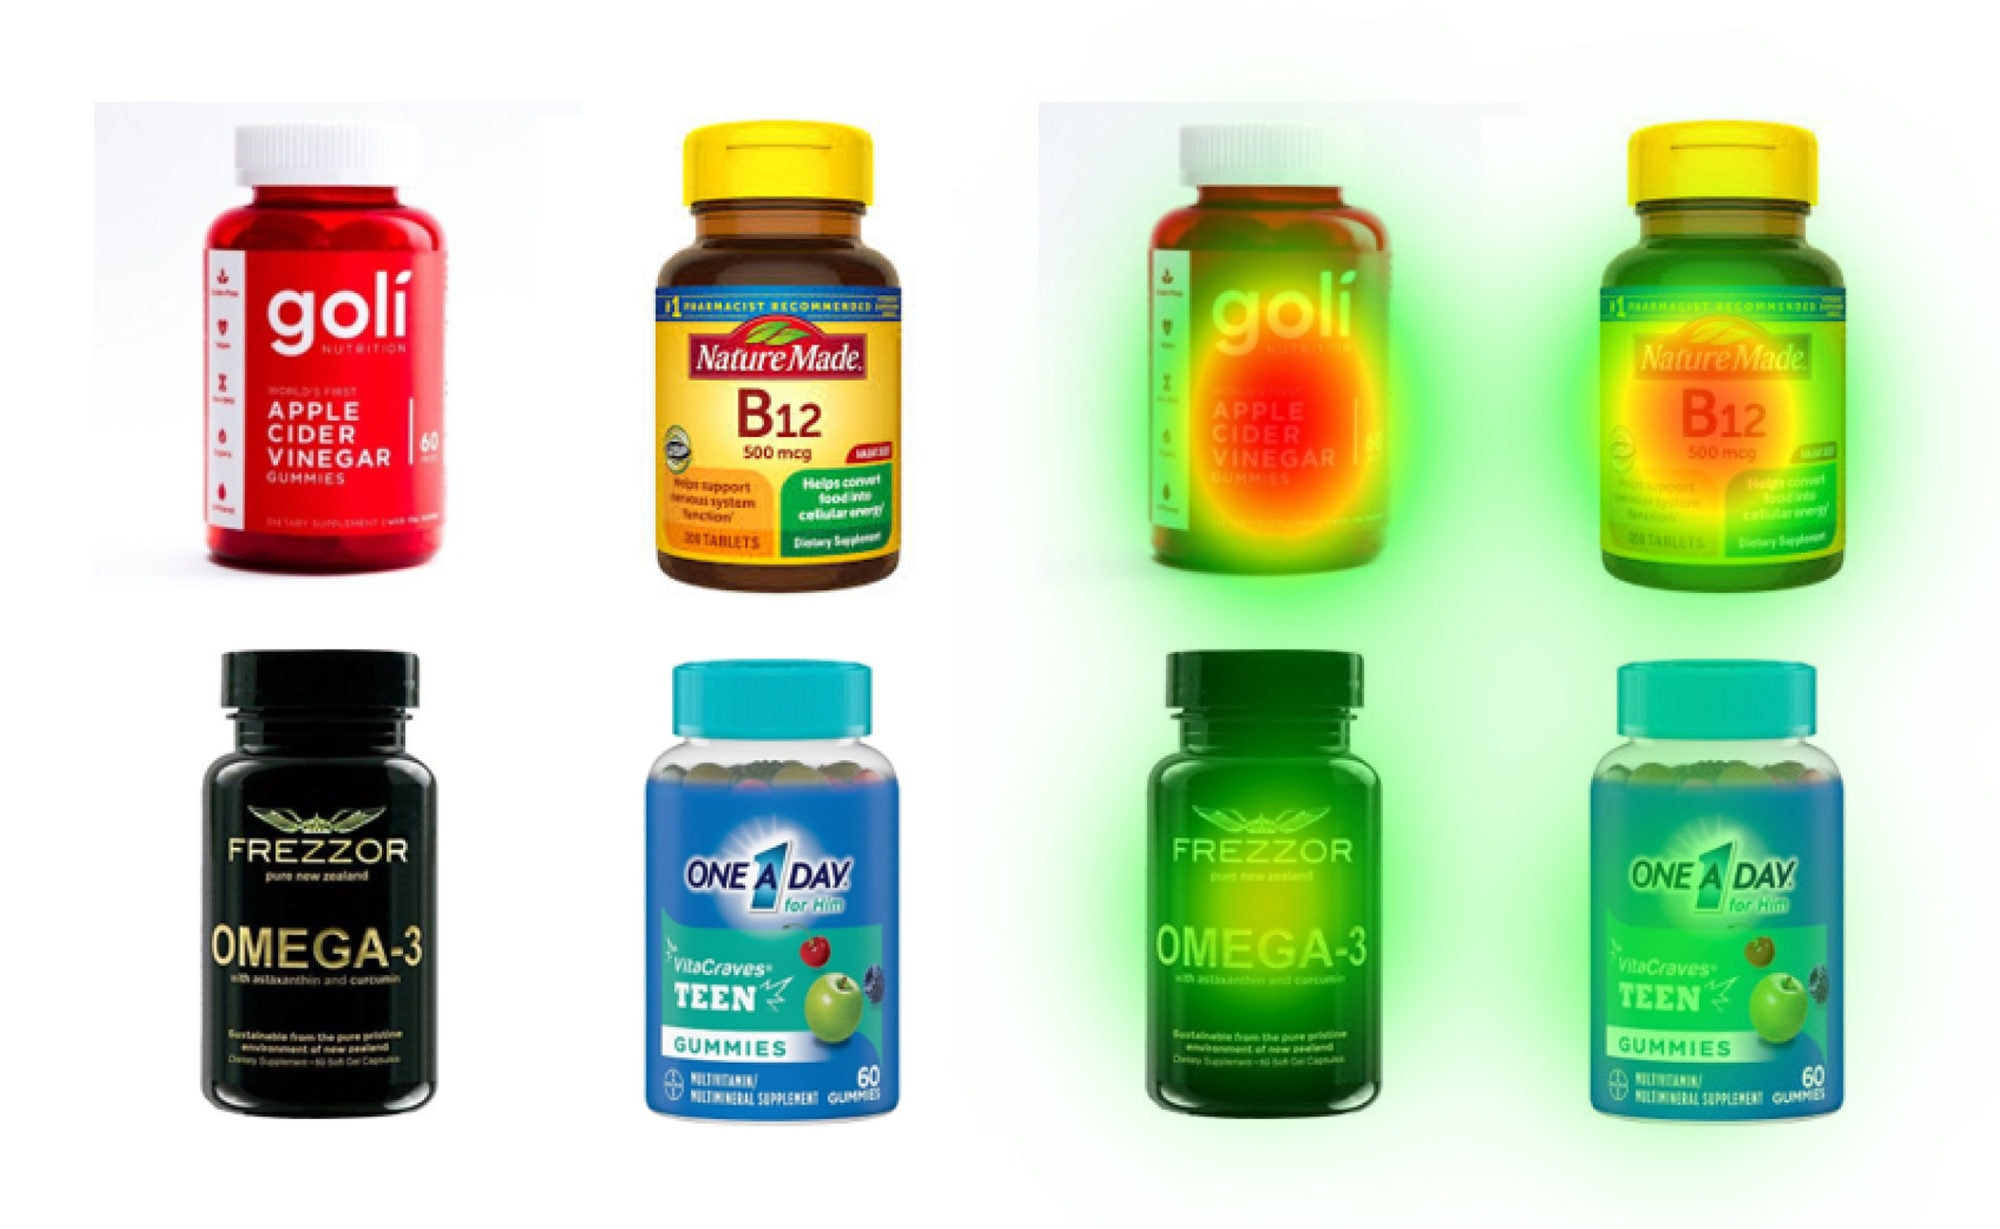 Pill bottles with the NeuroVision heatmap over them.